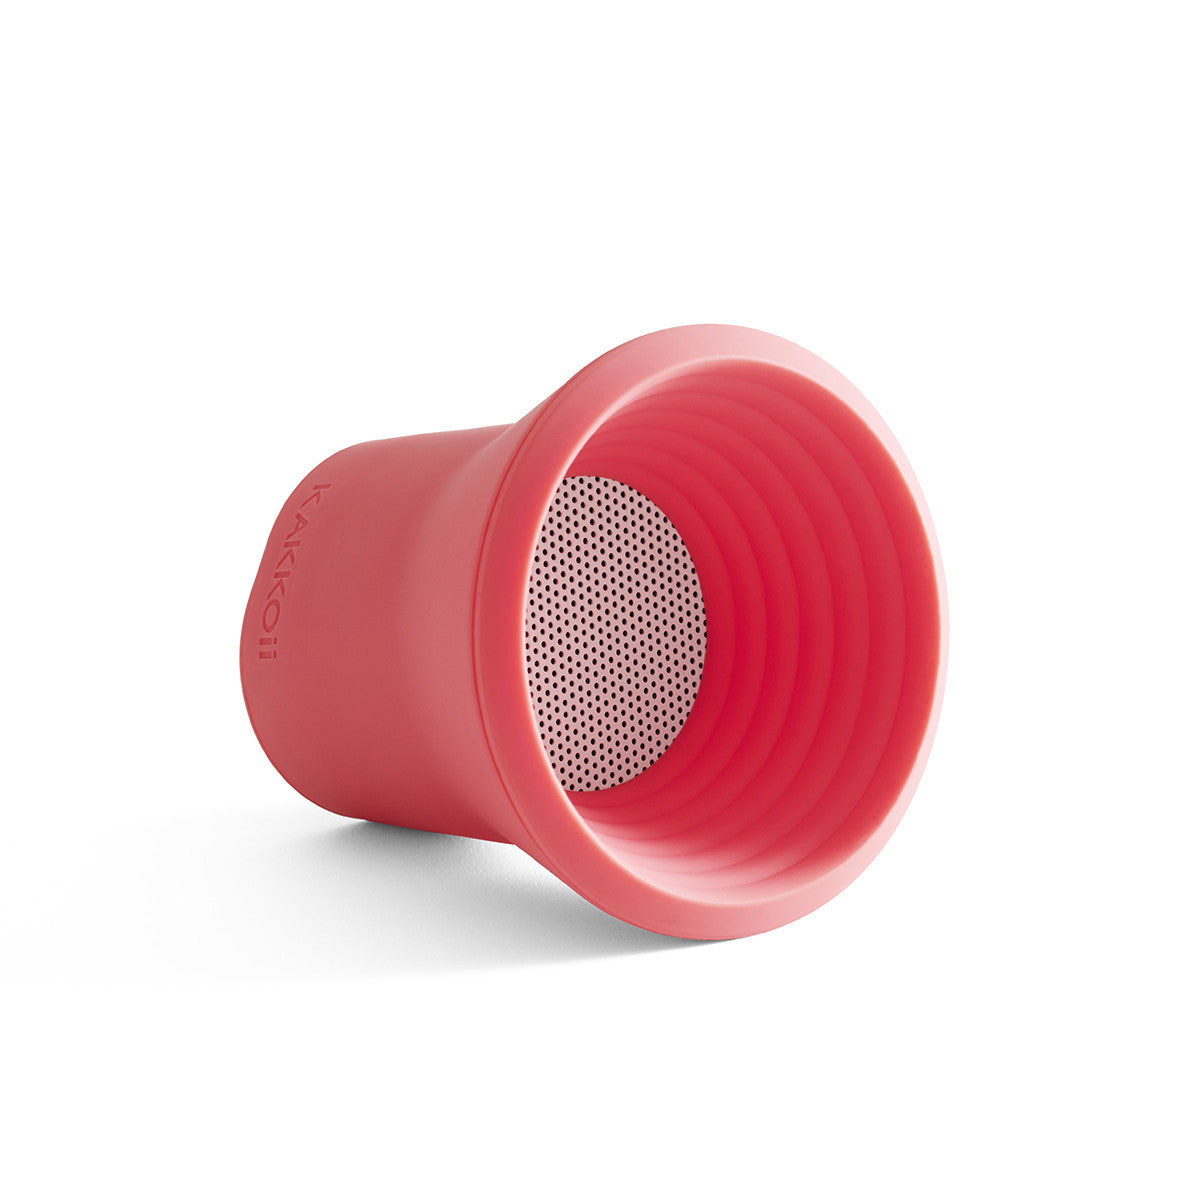 Kakkoii Wow Splash Waterproof Wireless Speaker